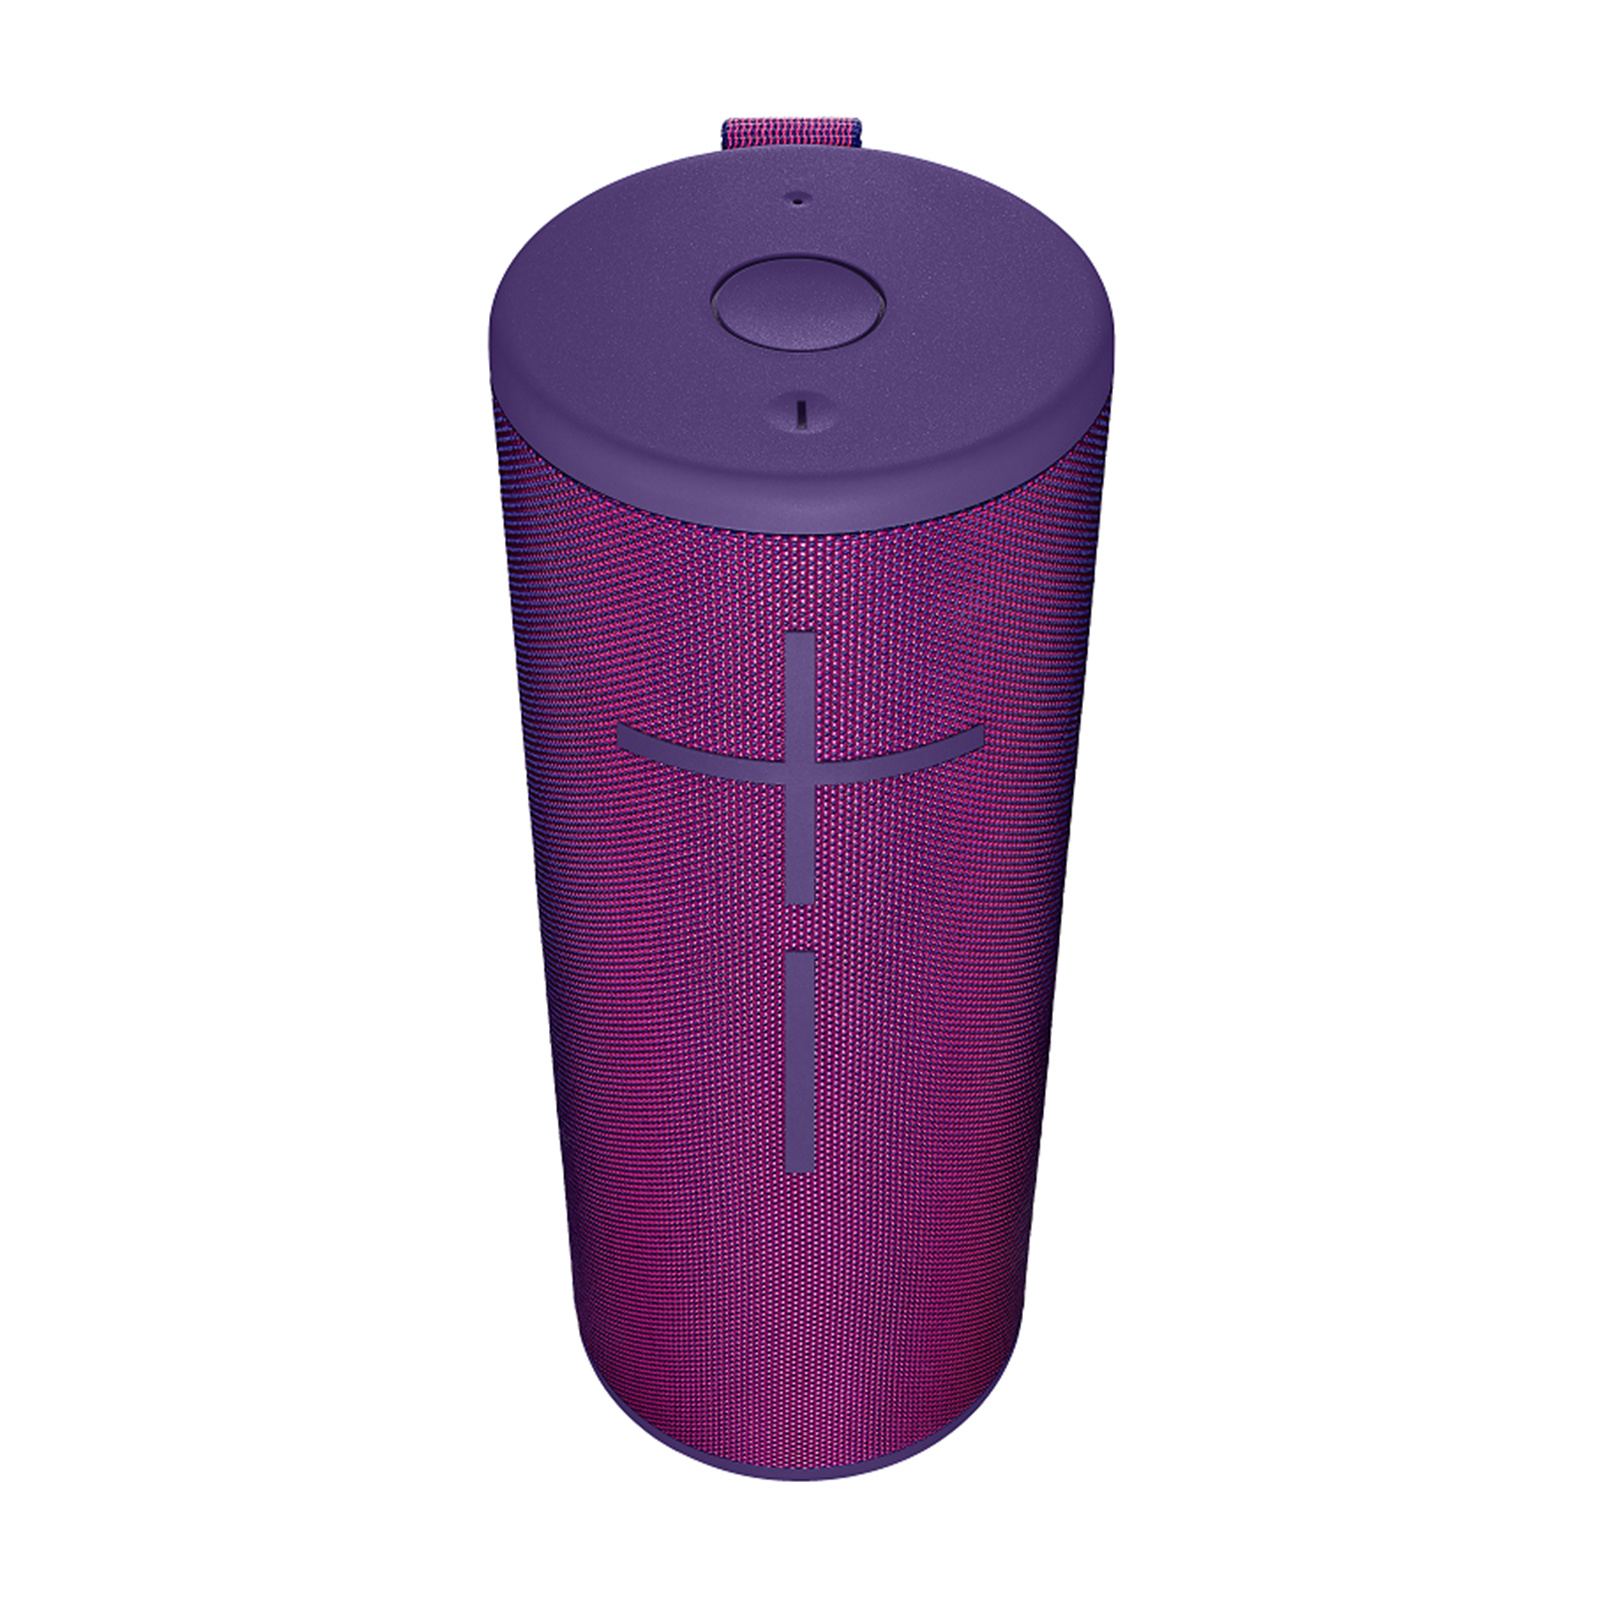 Open-Minded Ultimate Ears Megaboom Boom2 Portable Speaker Bluetooth Wireless Waterproof Portable Audio & Headphones